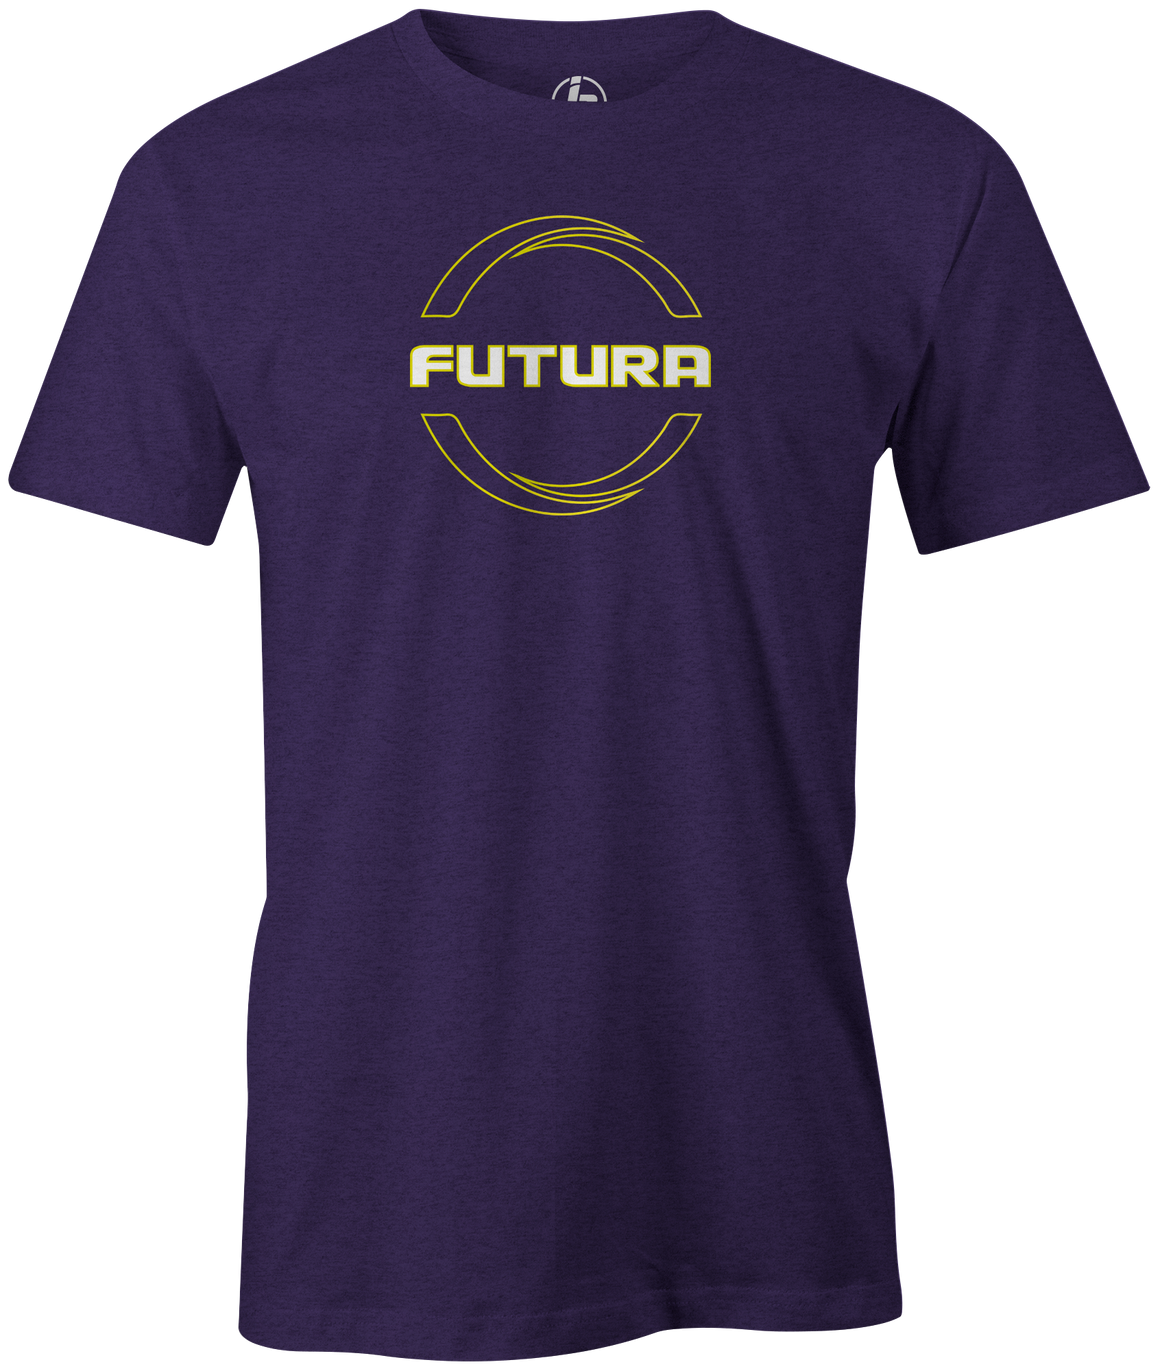 Futura Ebonite Bowling T-Shirt Purple tee